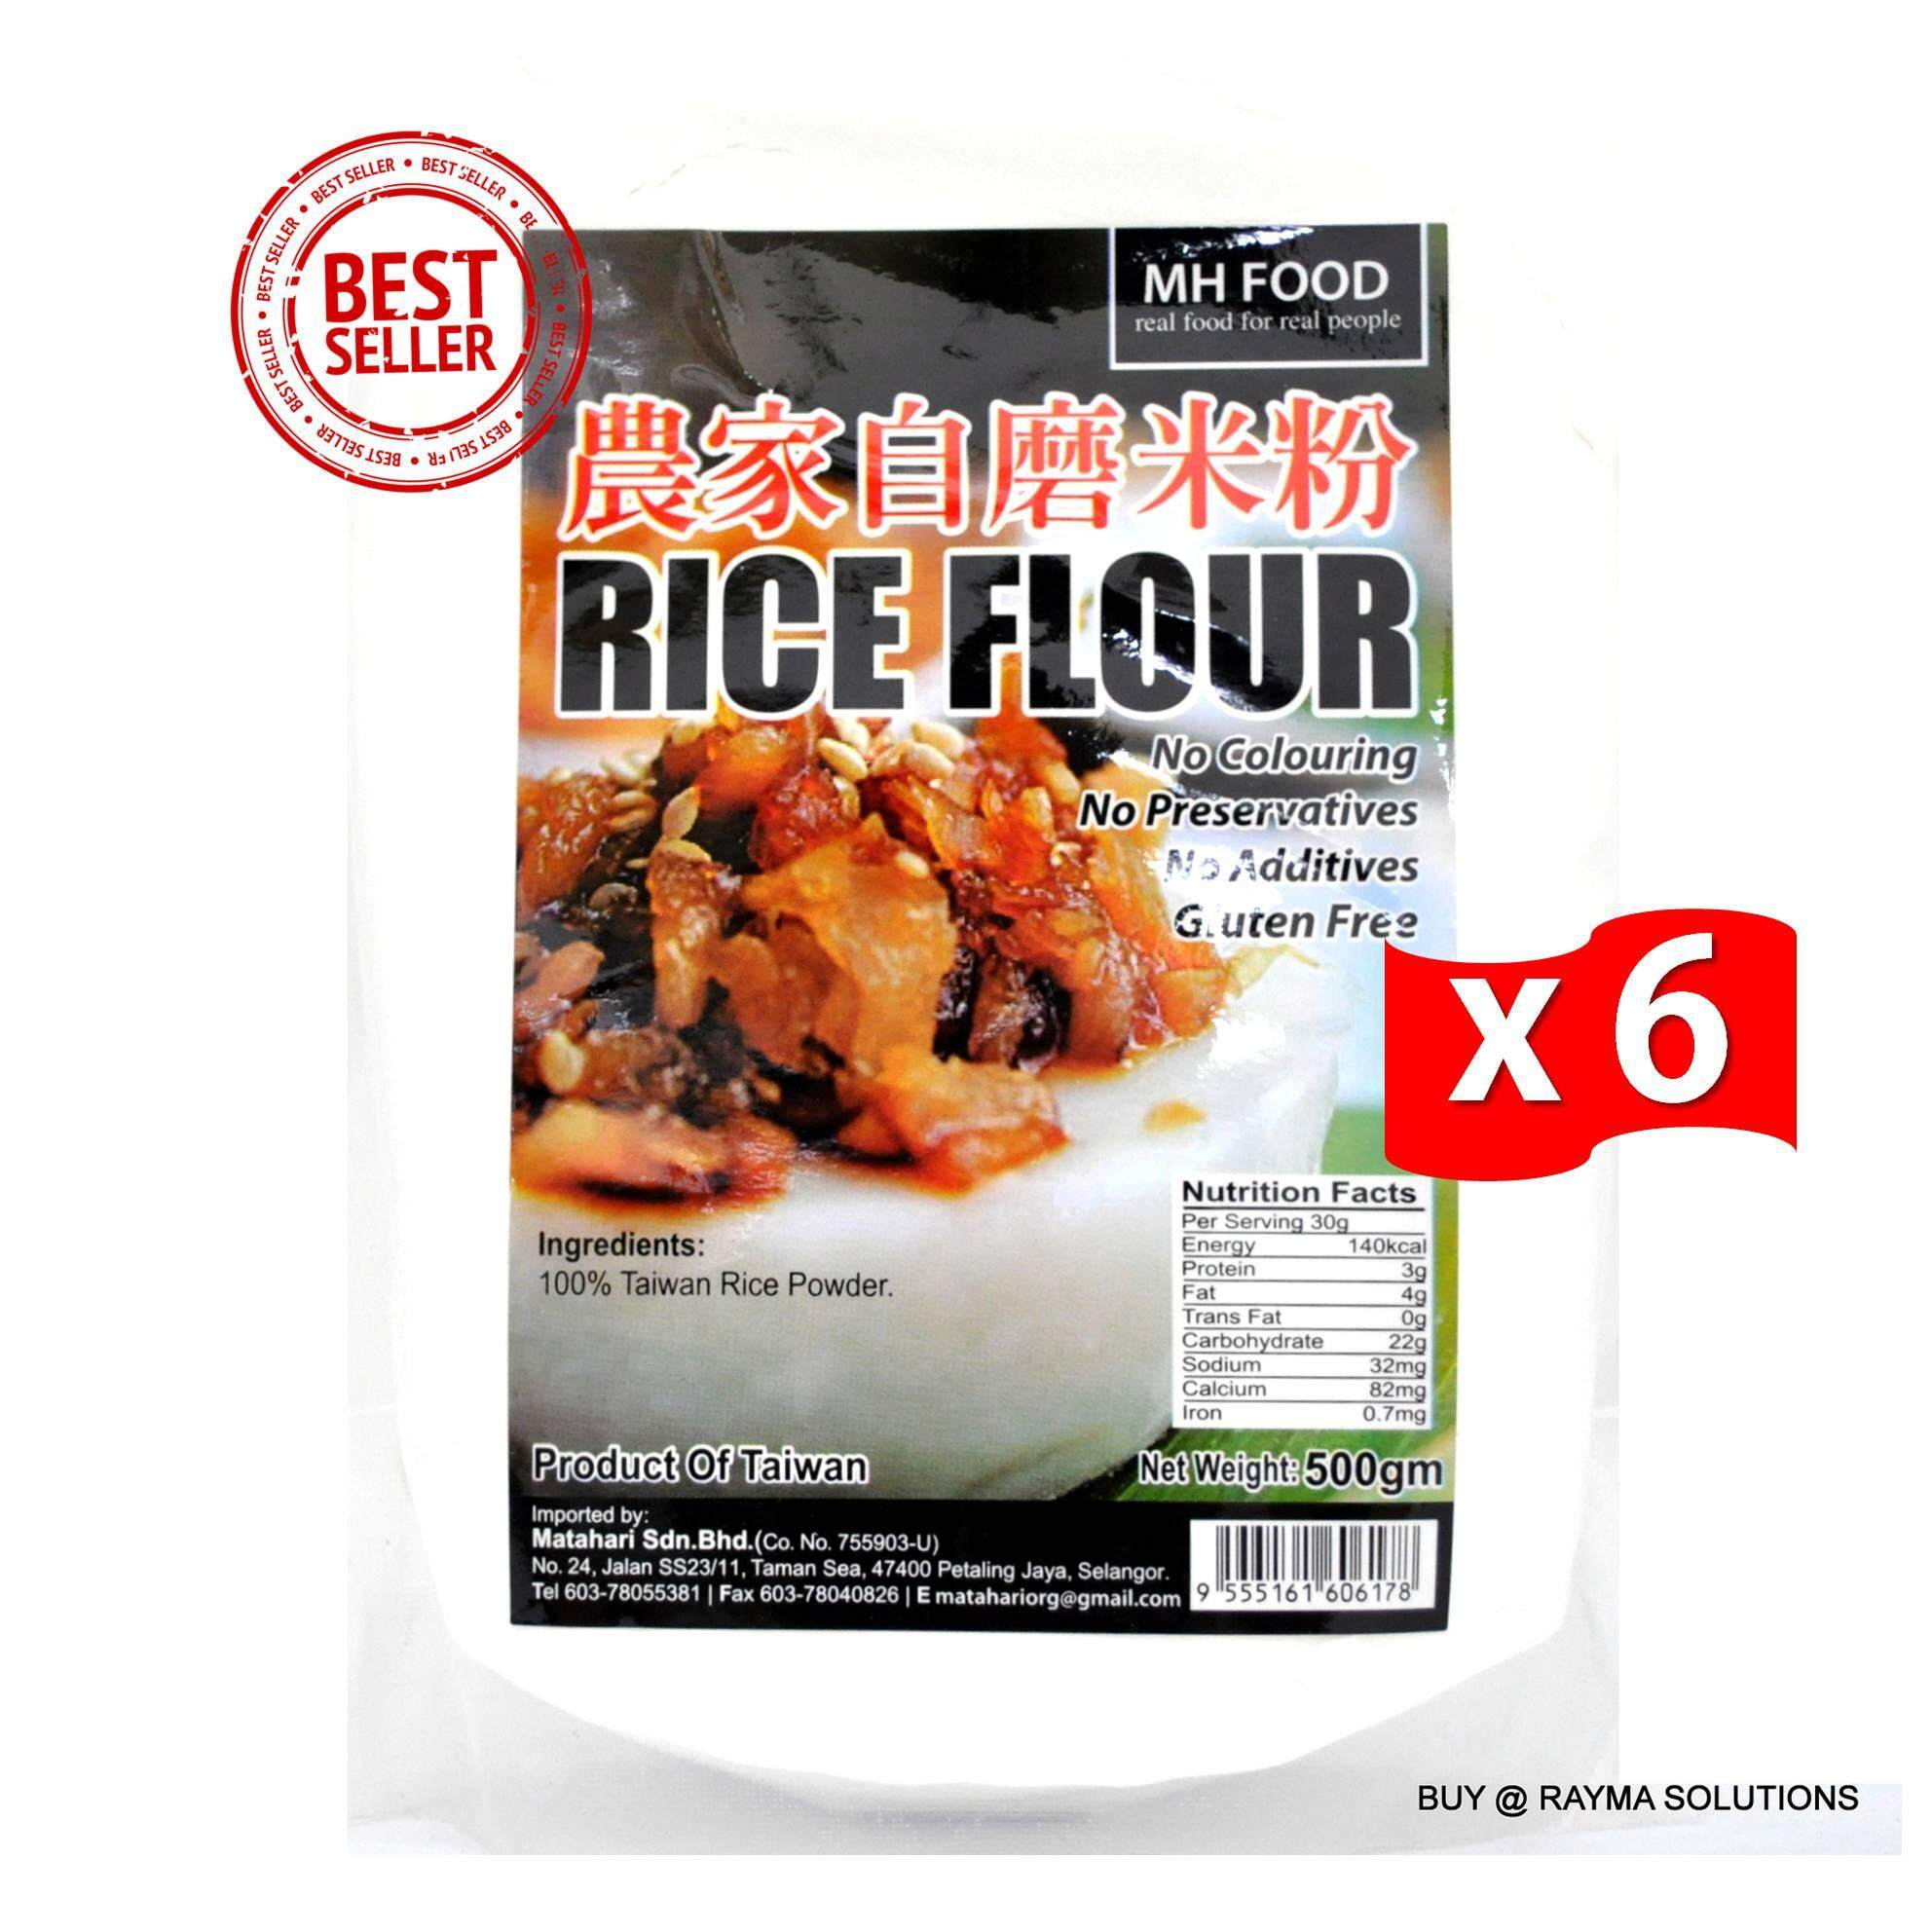 [BEST DEAL] MH FOOD Gluten-free Rice Flour 500g (6 Packs)